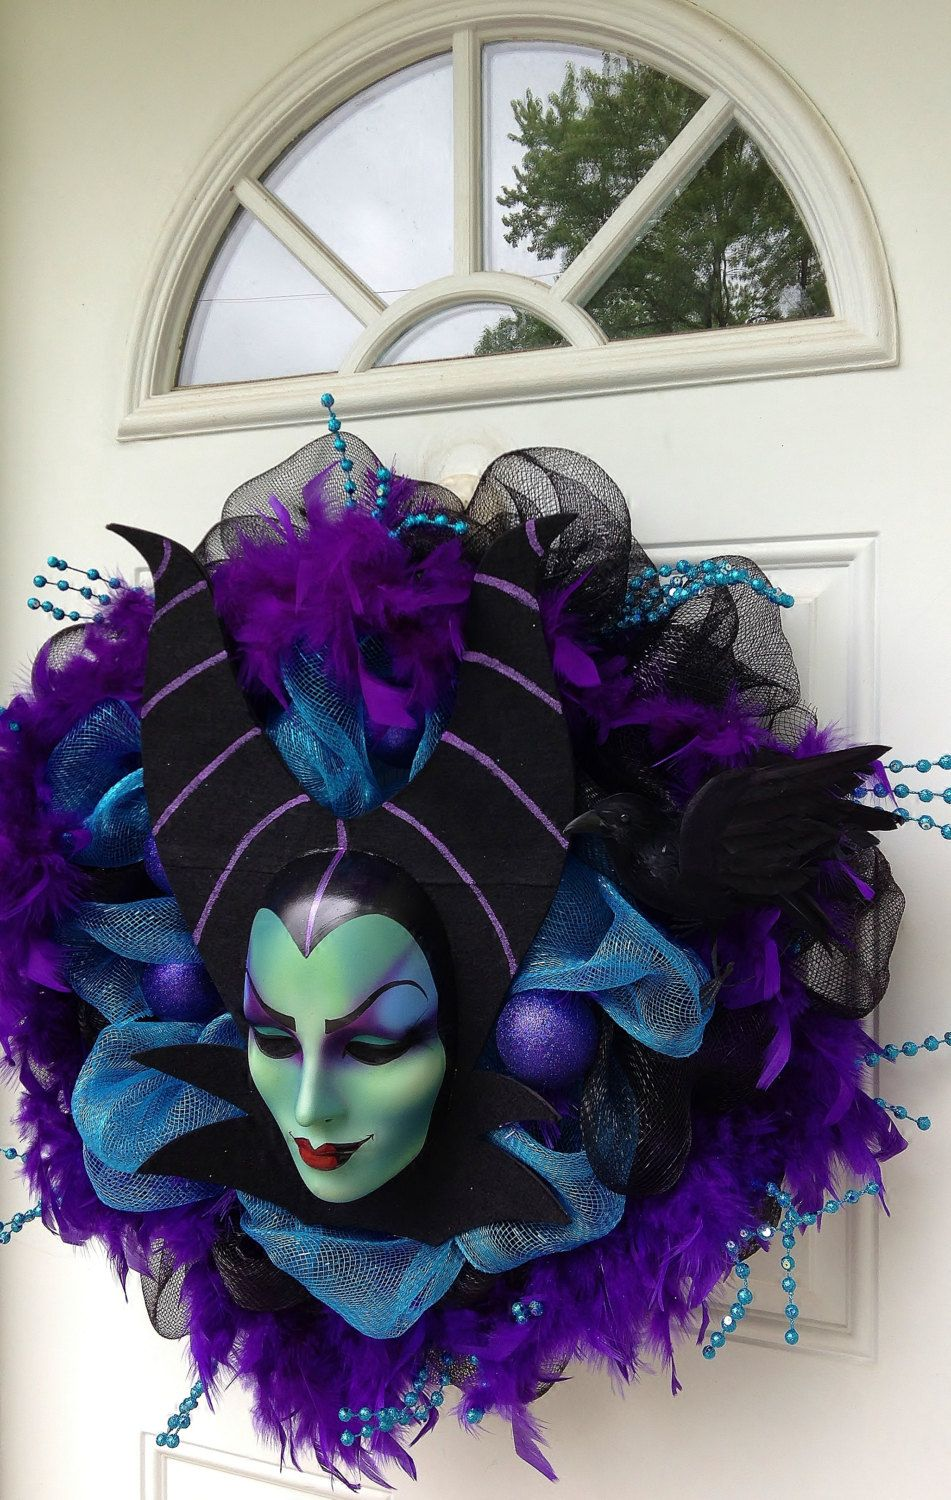 Maleficent+Disney+Halloween+Wreath++by+SparkleForYourCastle,+$15000 - Scary Door Decorations For Halloween